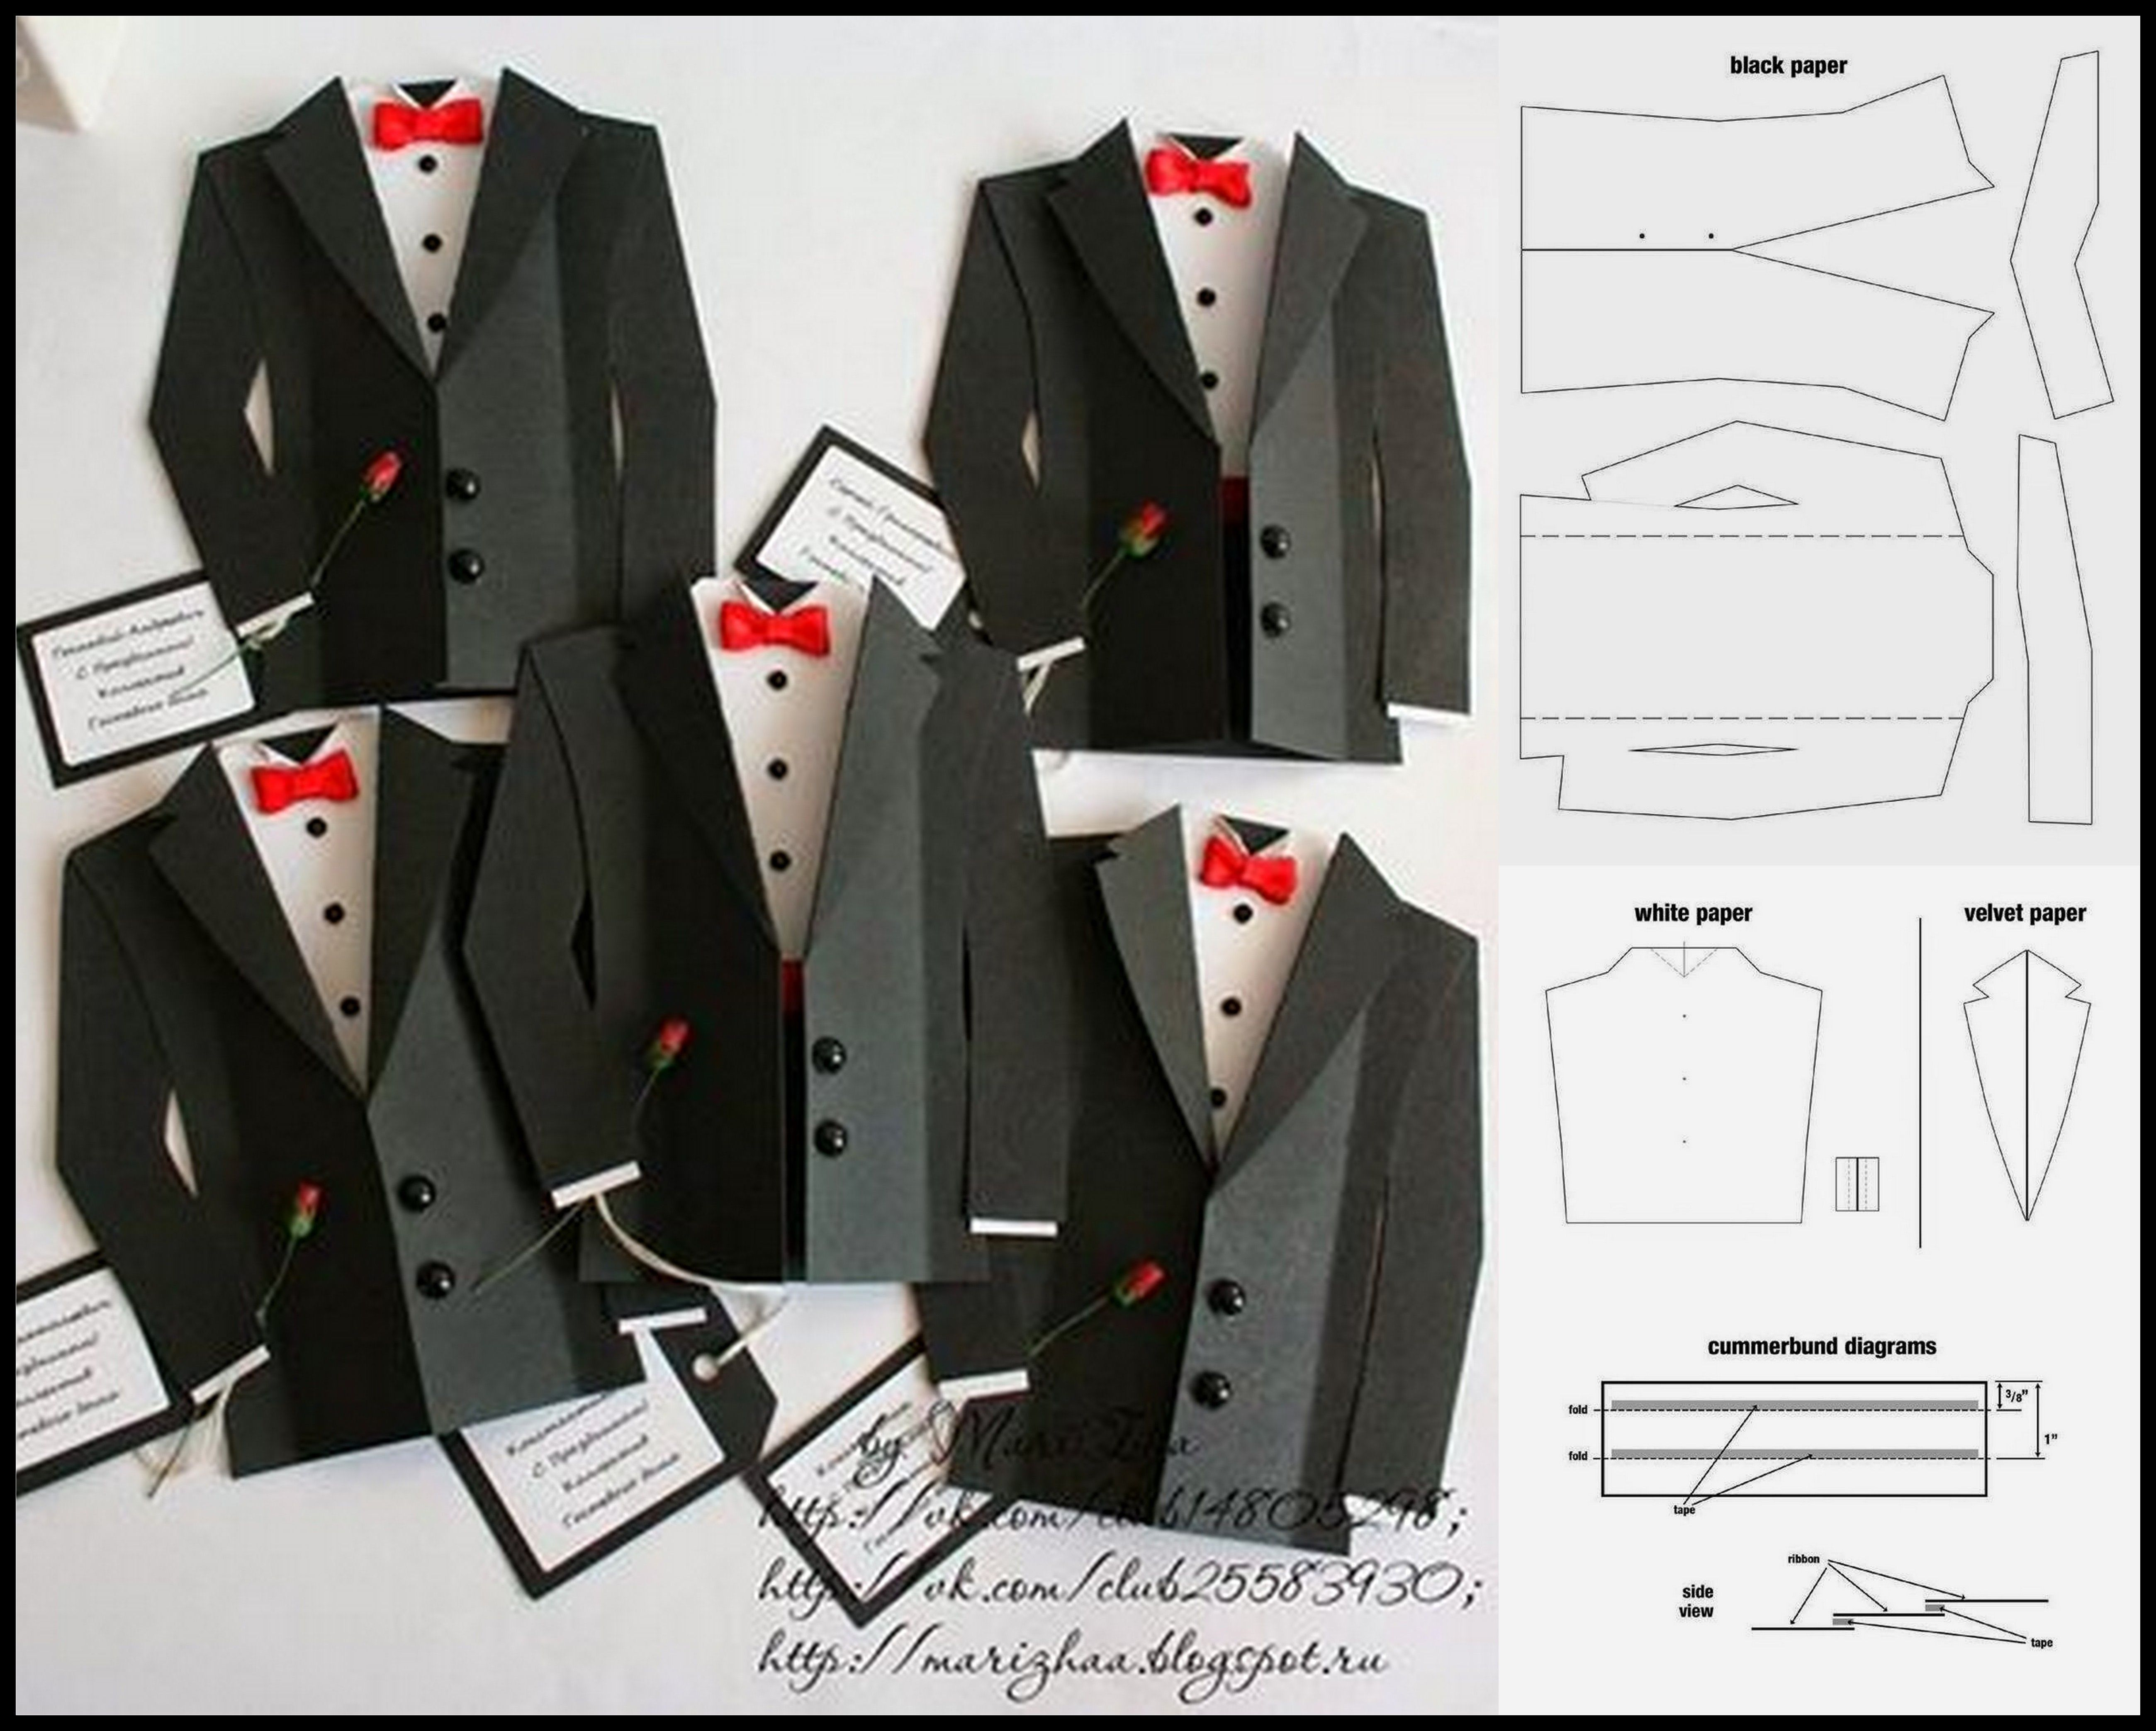 Pin By Marcela Maria On բացիկներ Tuxedo Card Handmade Birthday Cards Dress Card